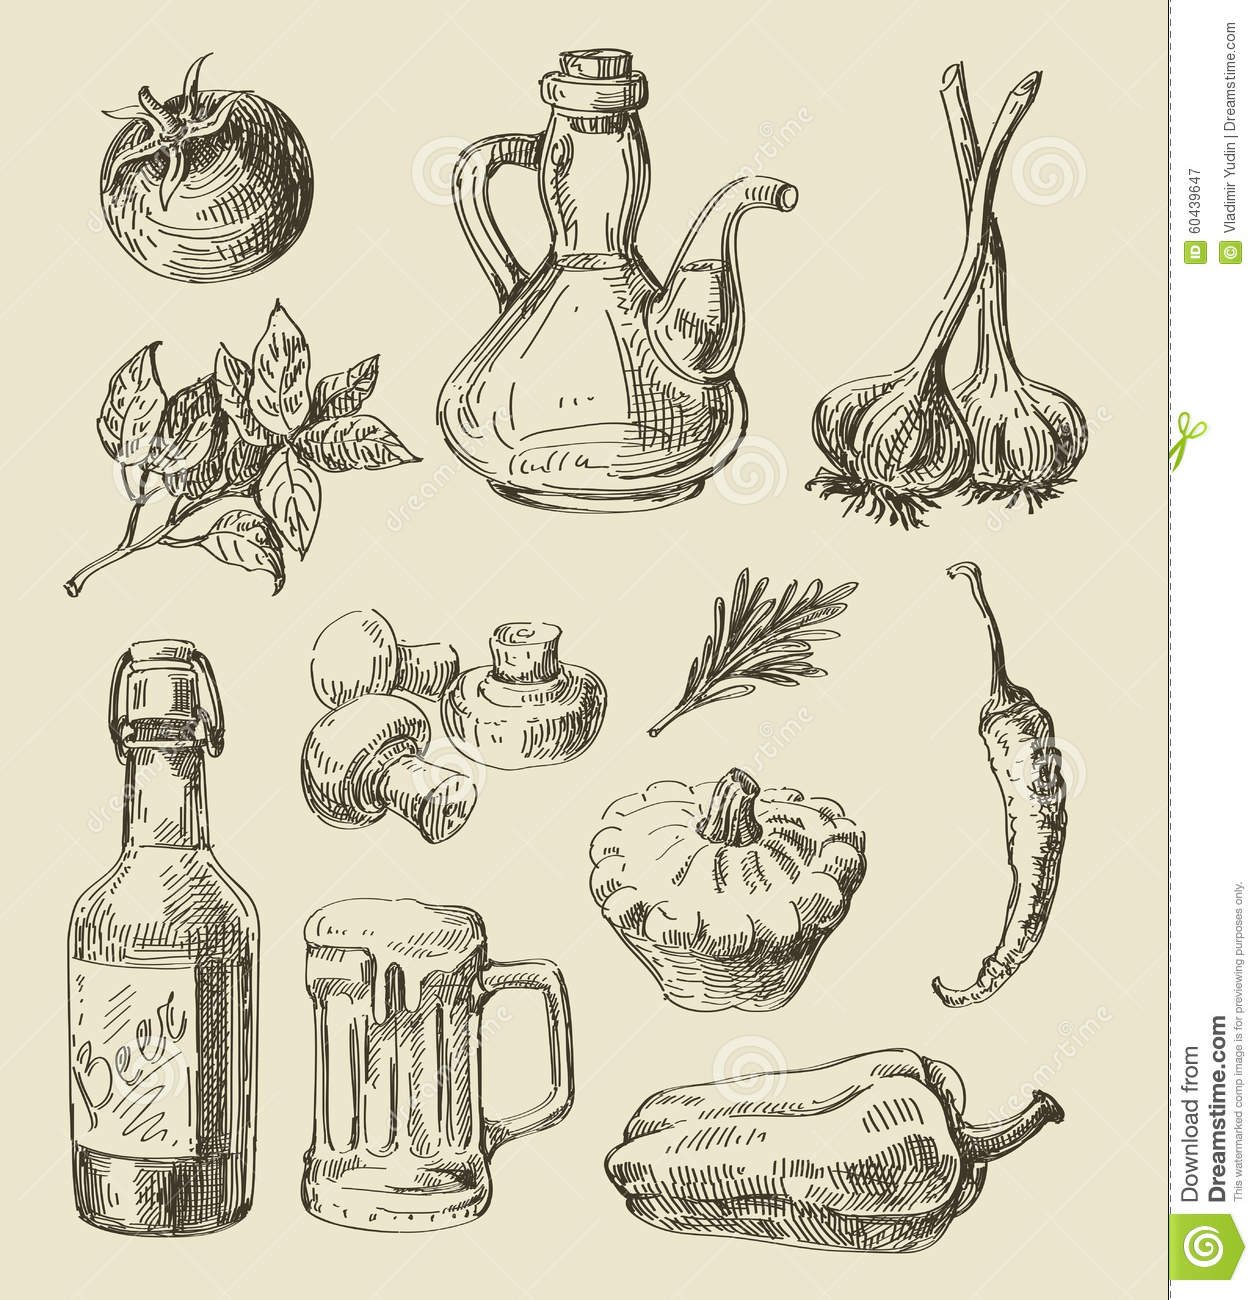 Hand Drawn Food Sketch Stock Vector. Illustration Of